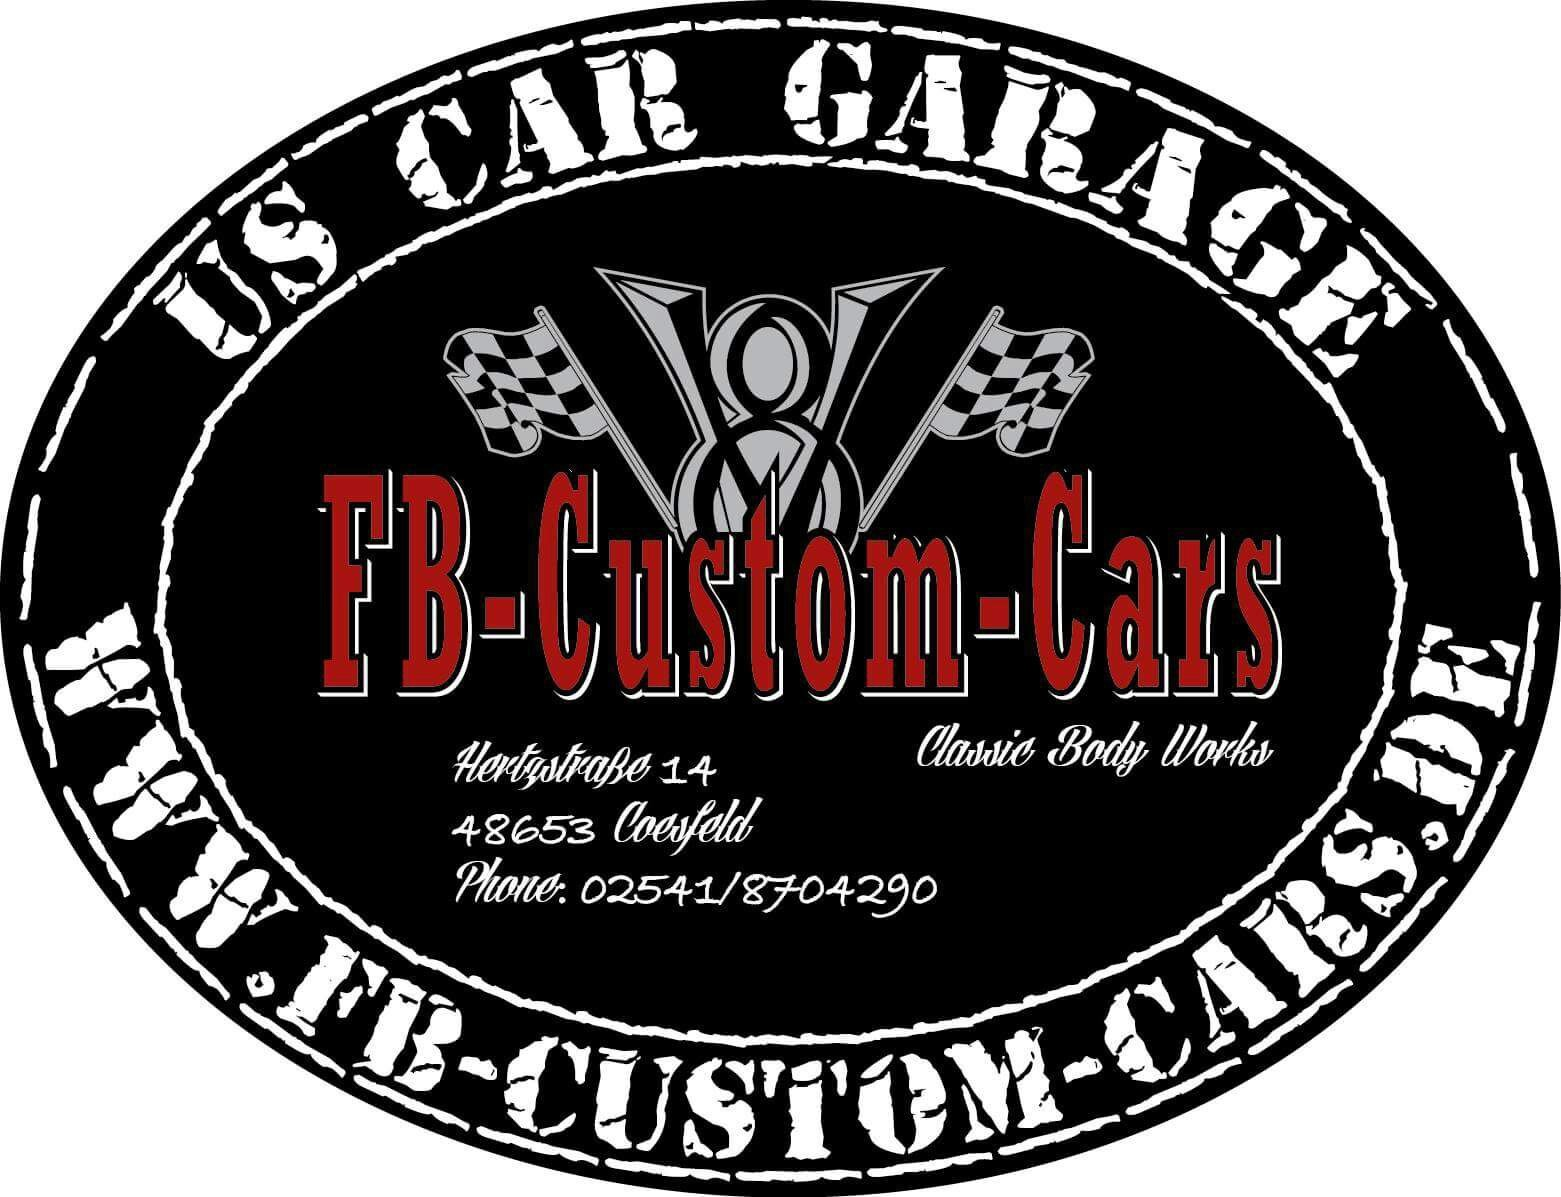 FB Custom Cars